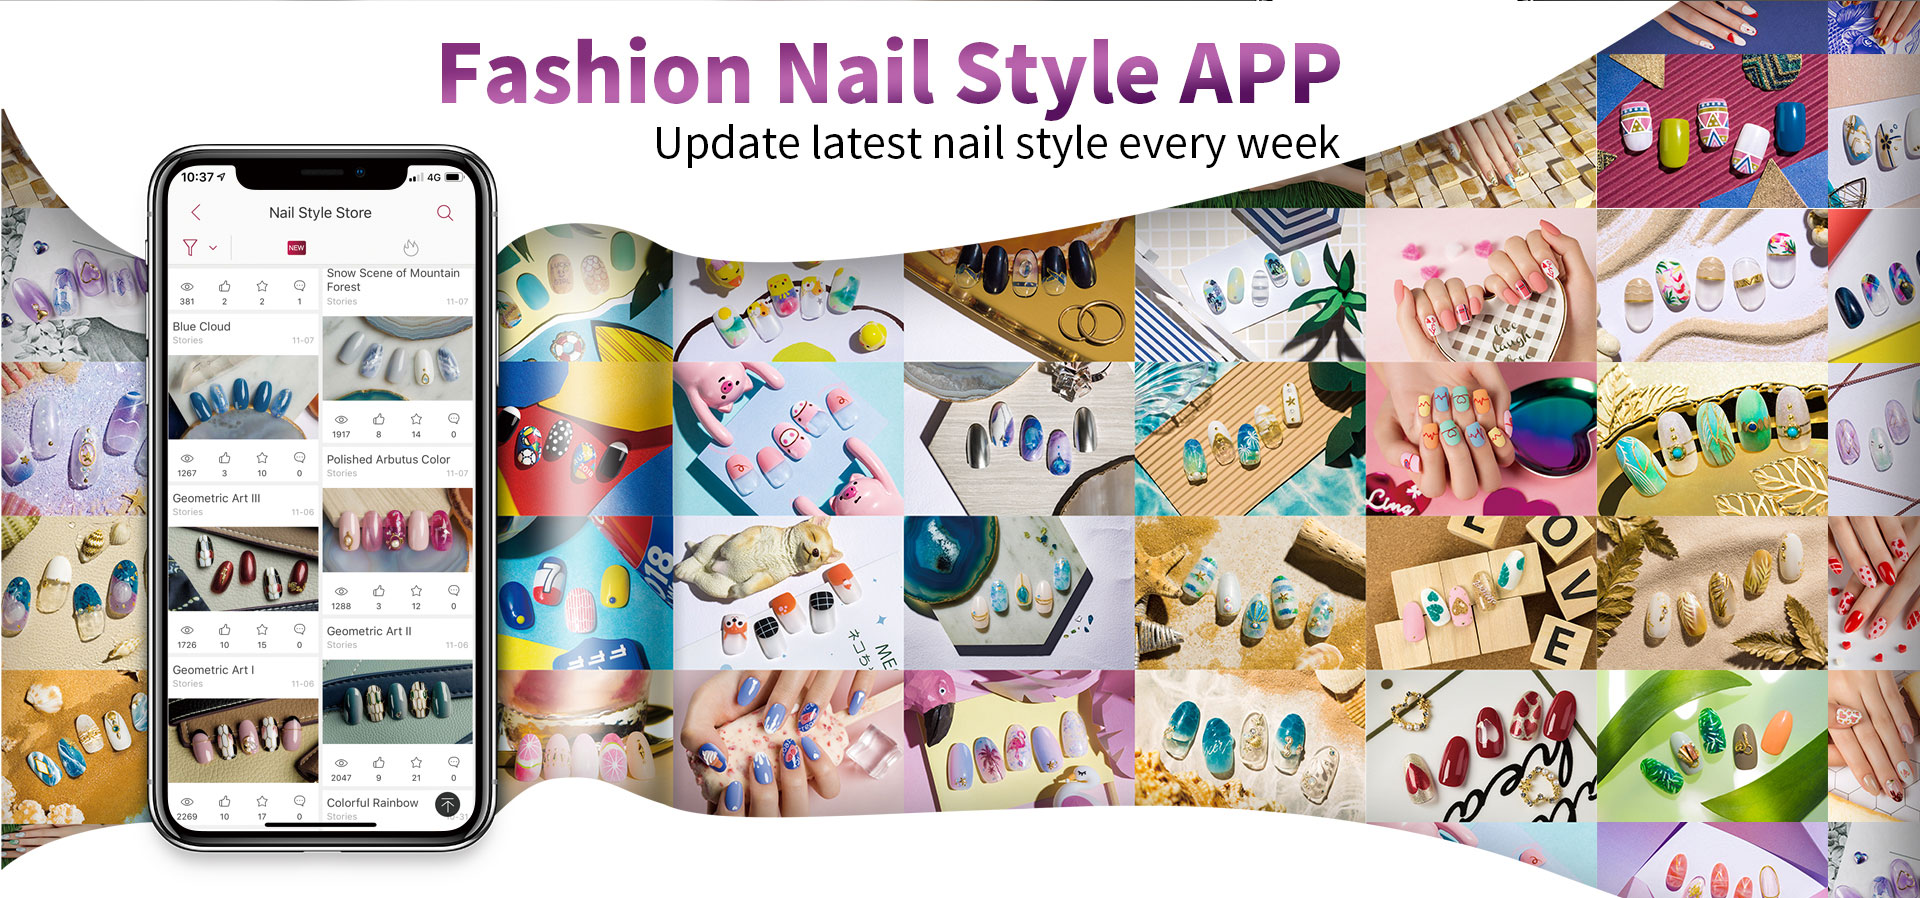 fashion nail style APP update latest nail style every week